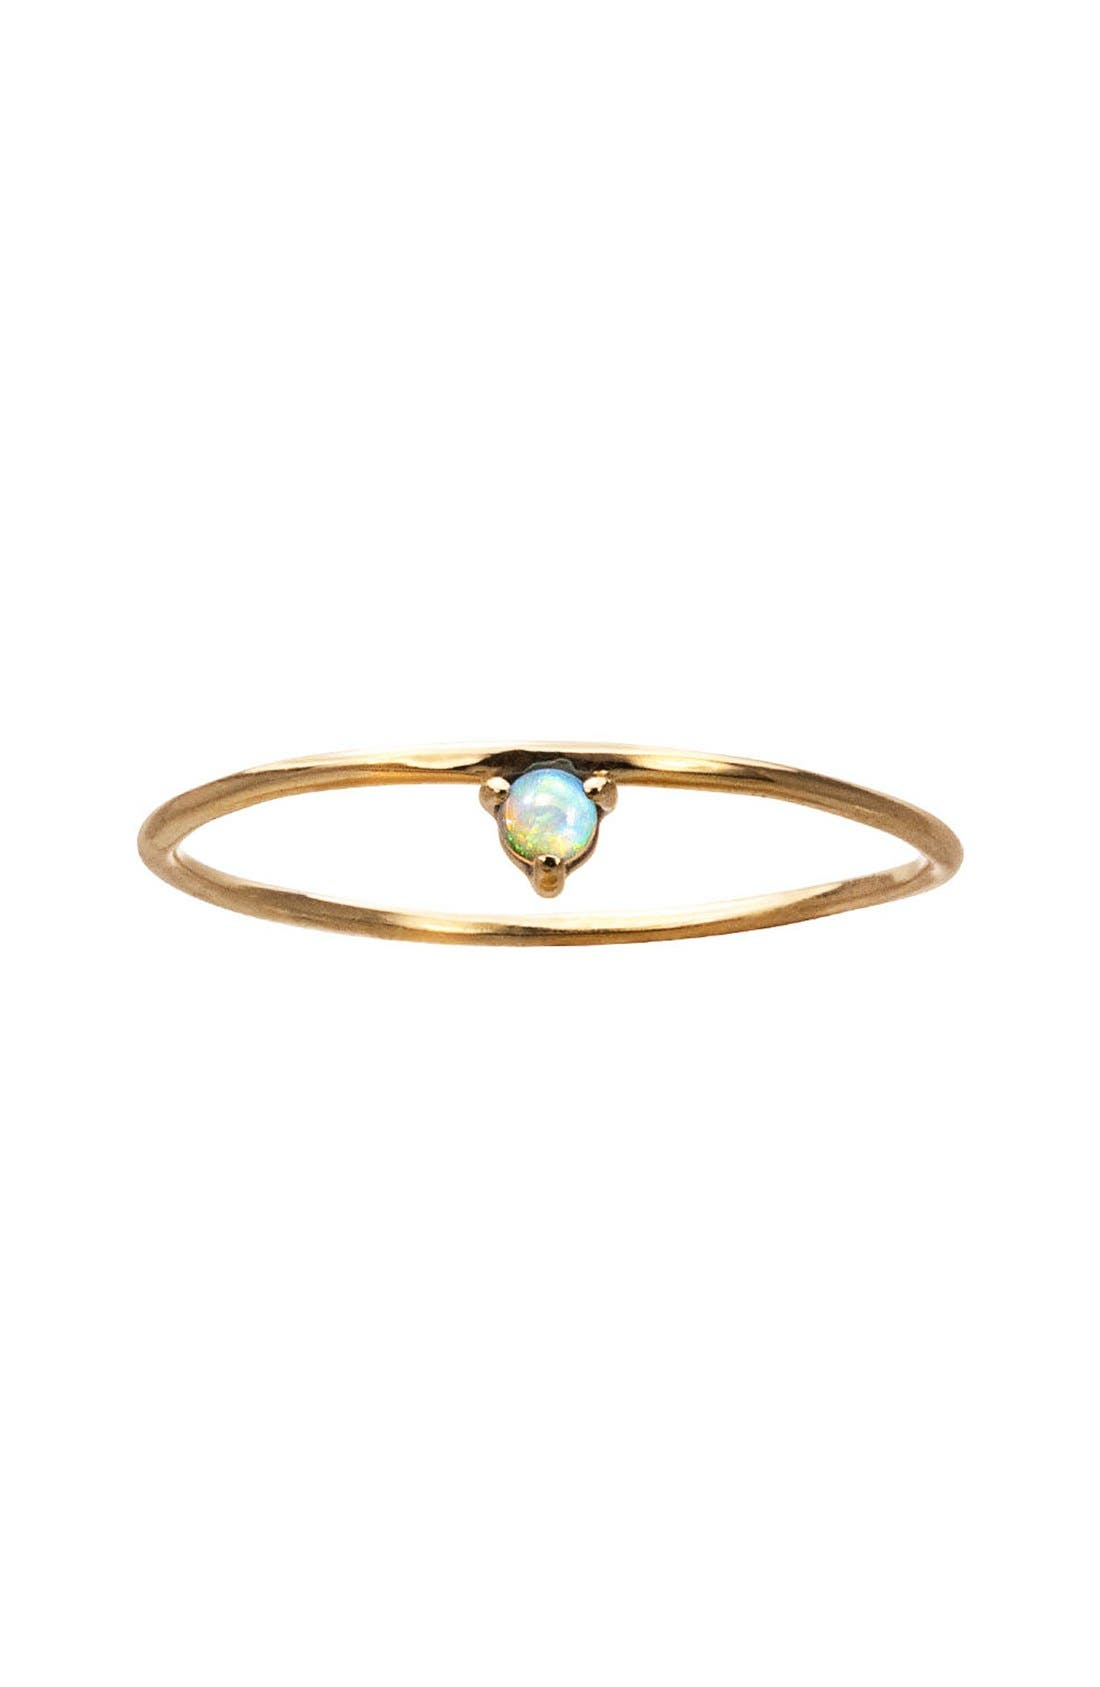 Main Image - WWAKE Counting Collection One Step Opal Ring